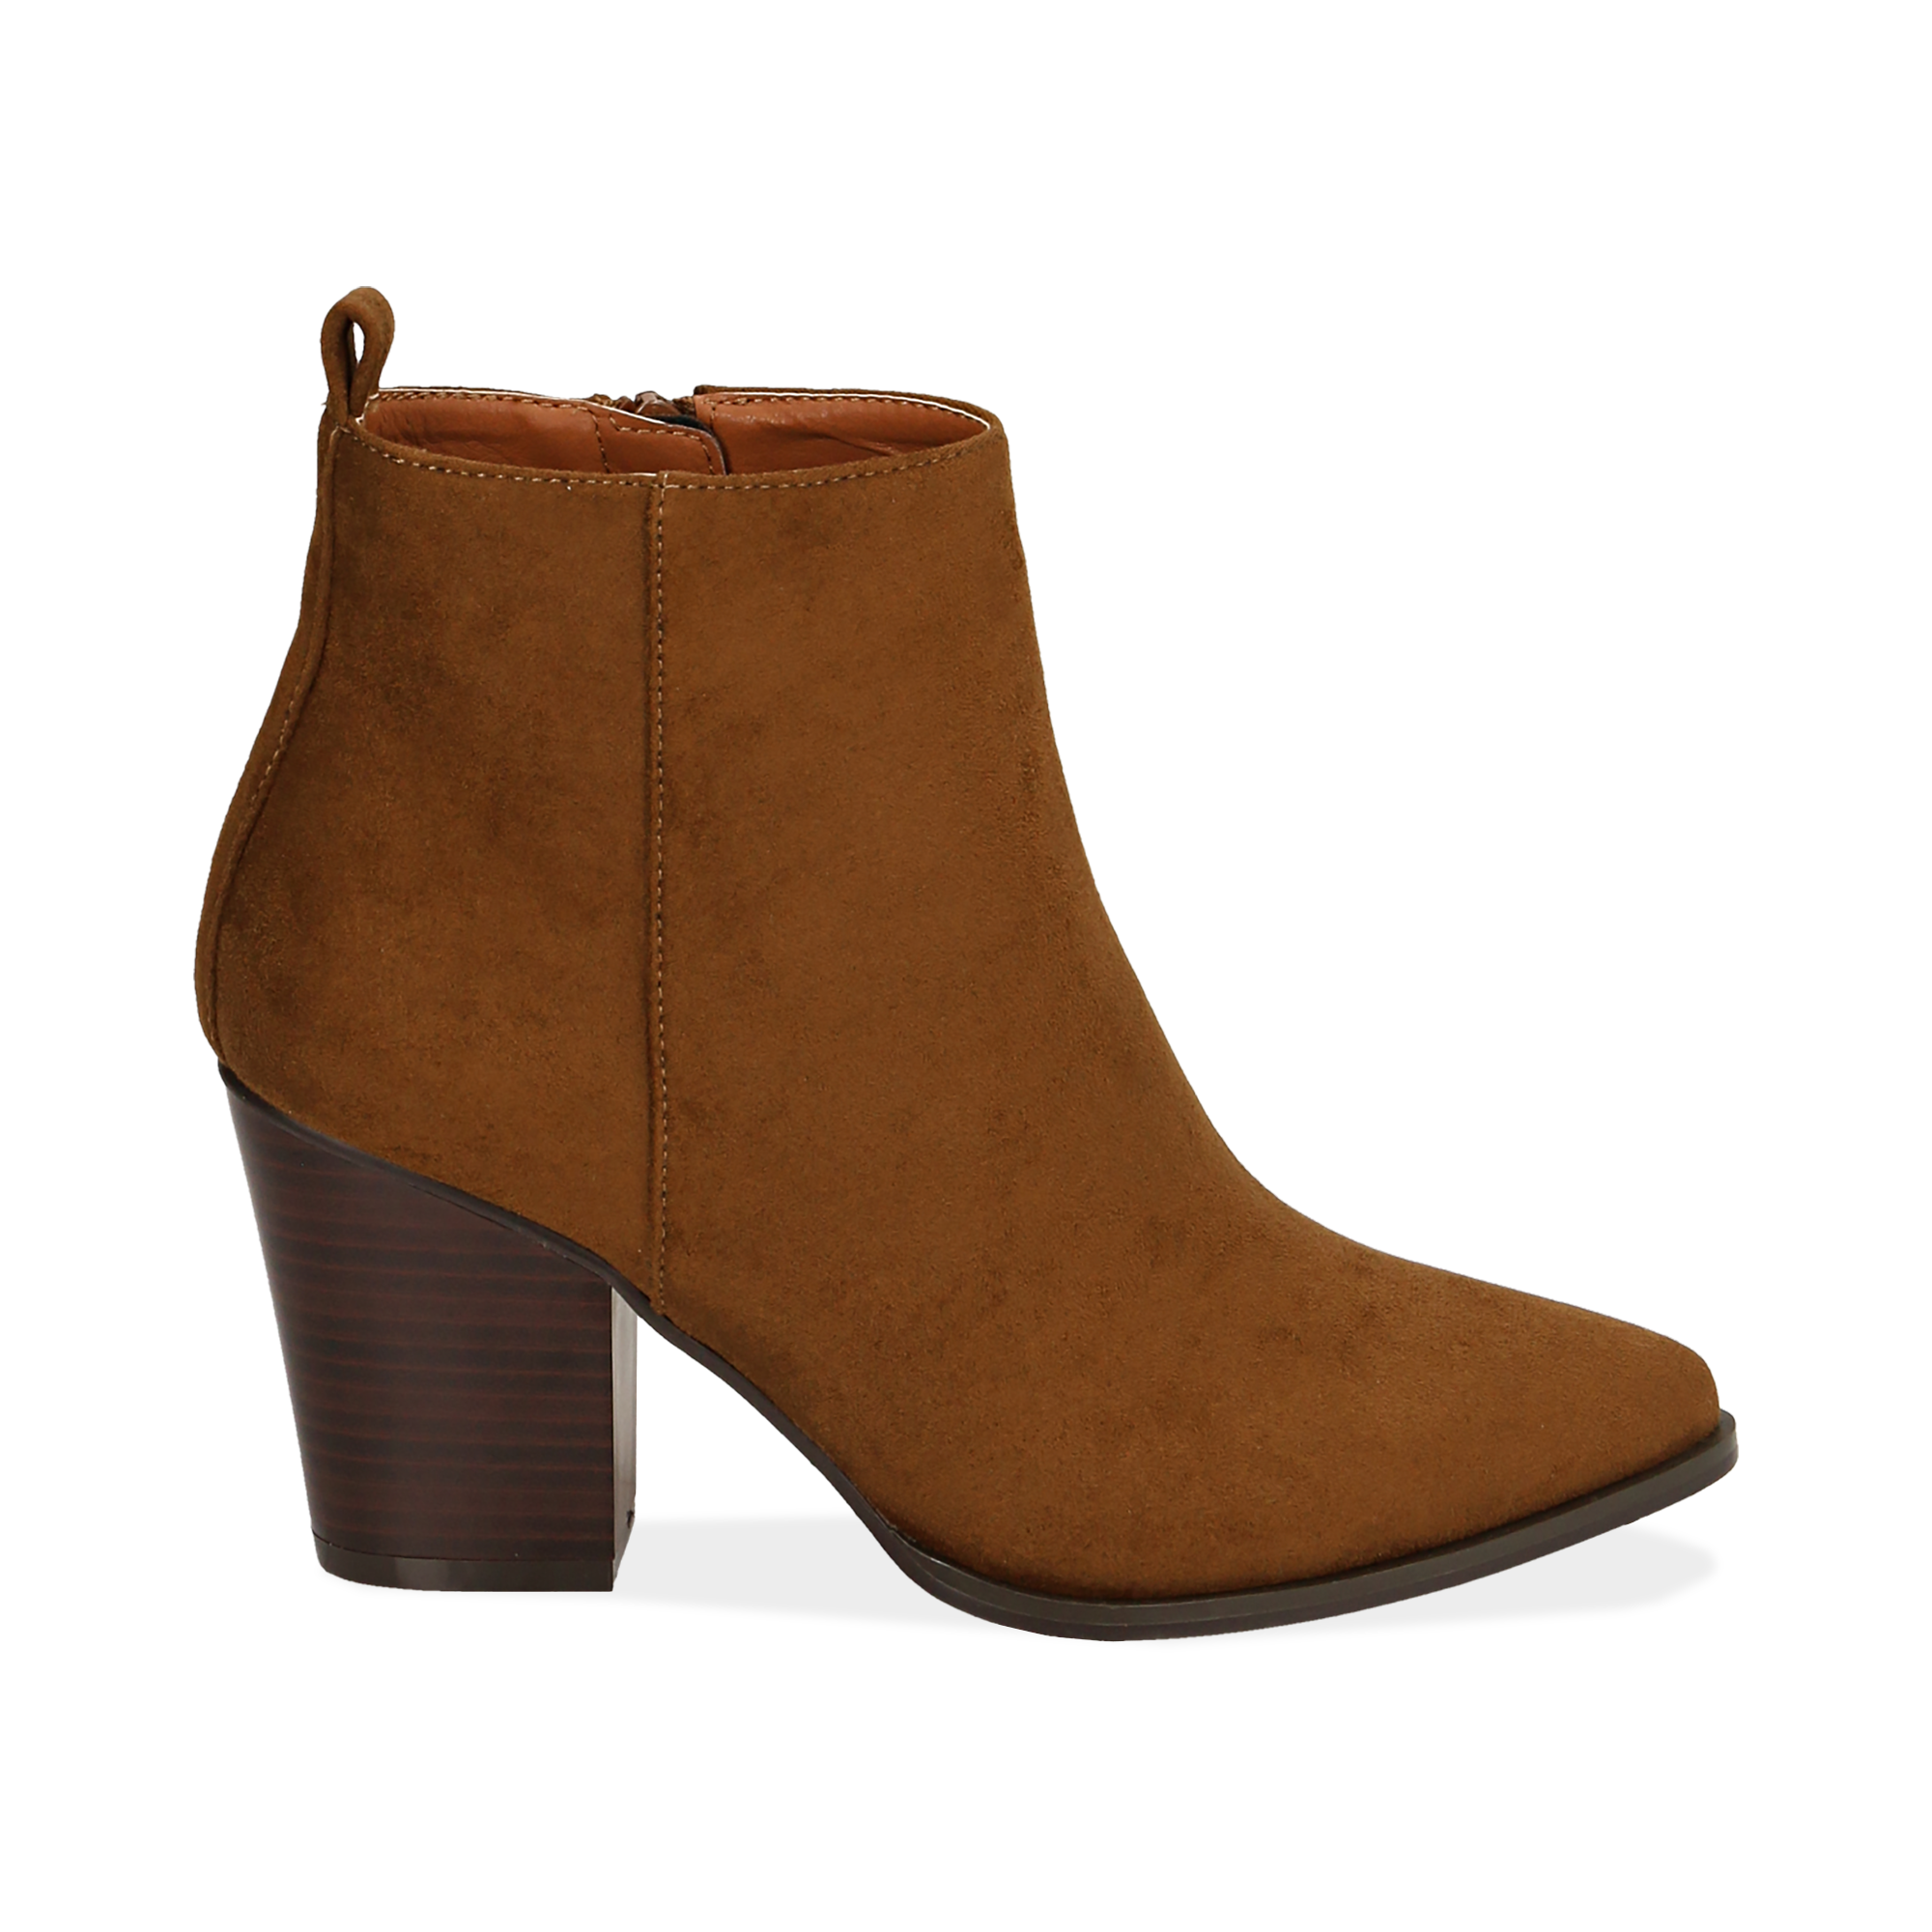 Ankle boots cuoio in microfibra, tacco 8,50 cm